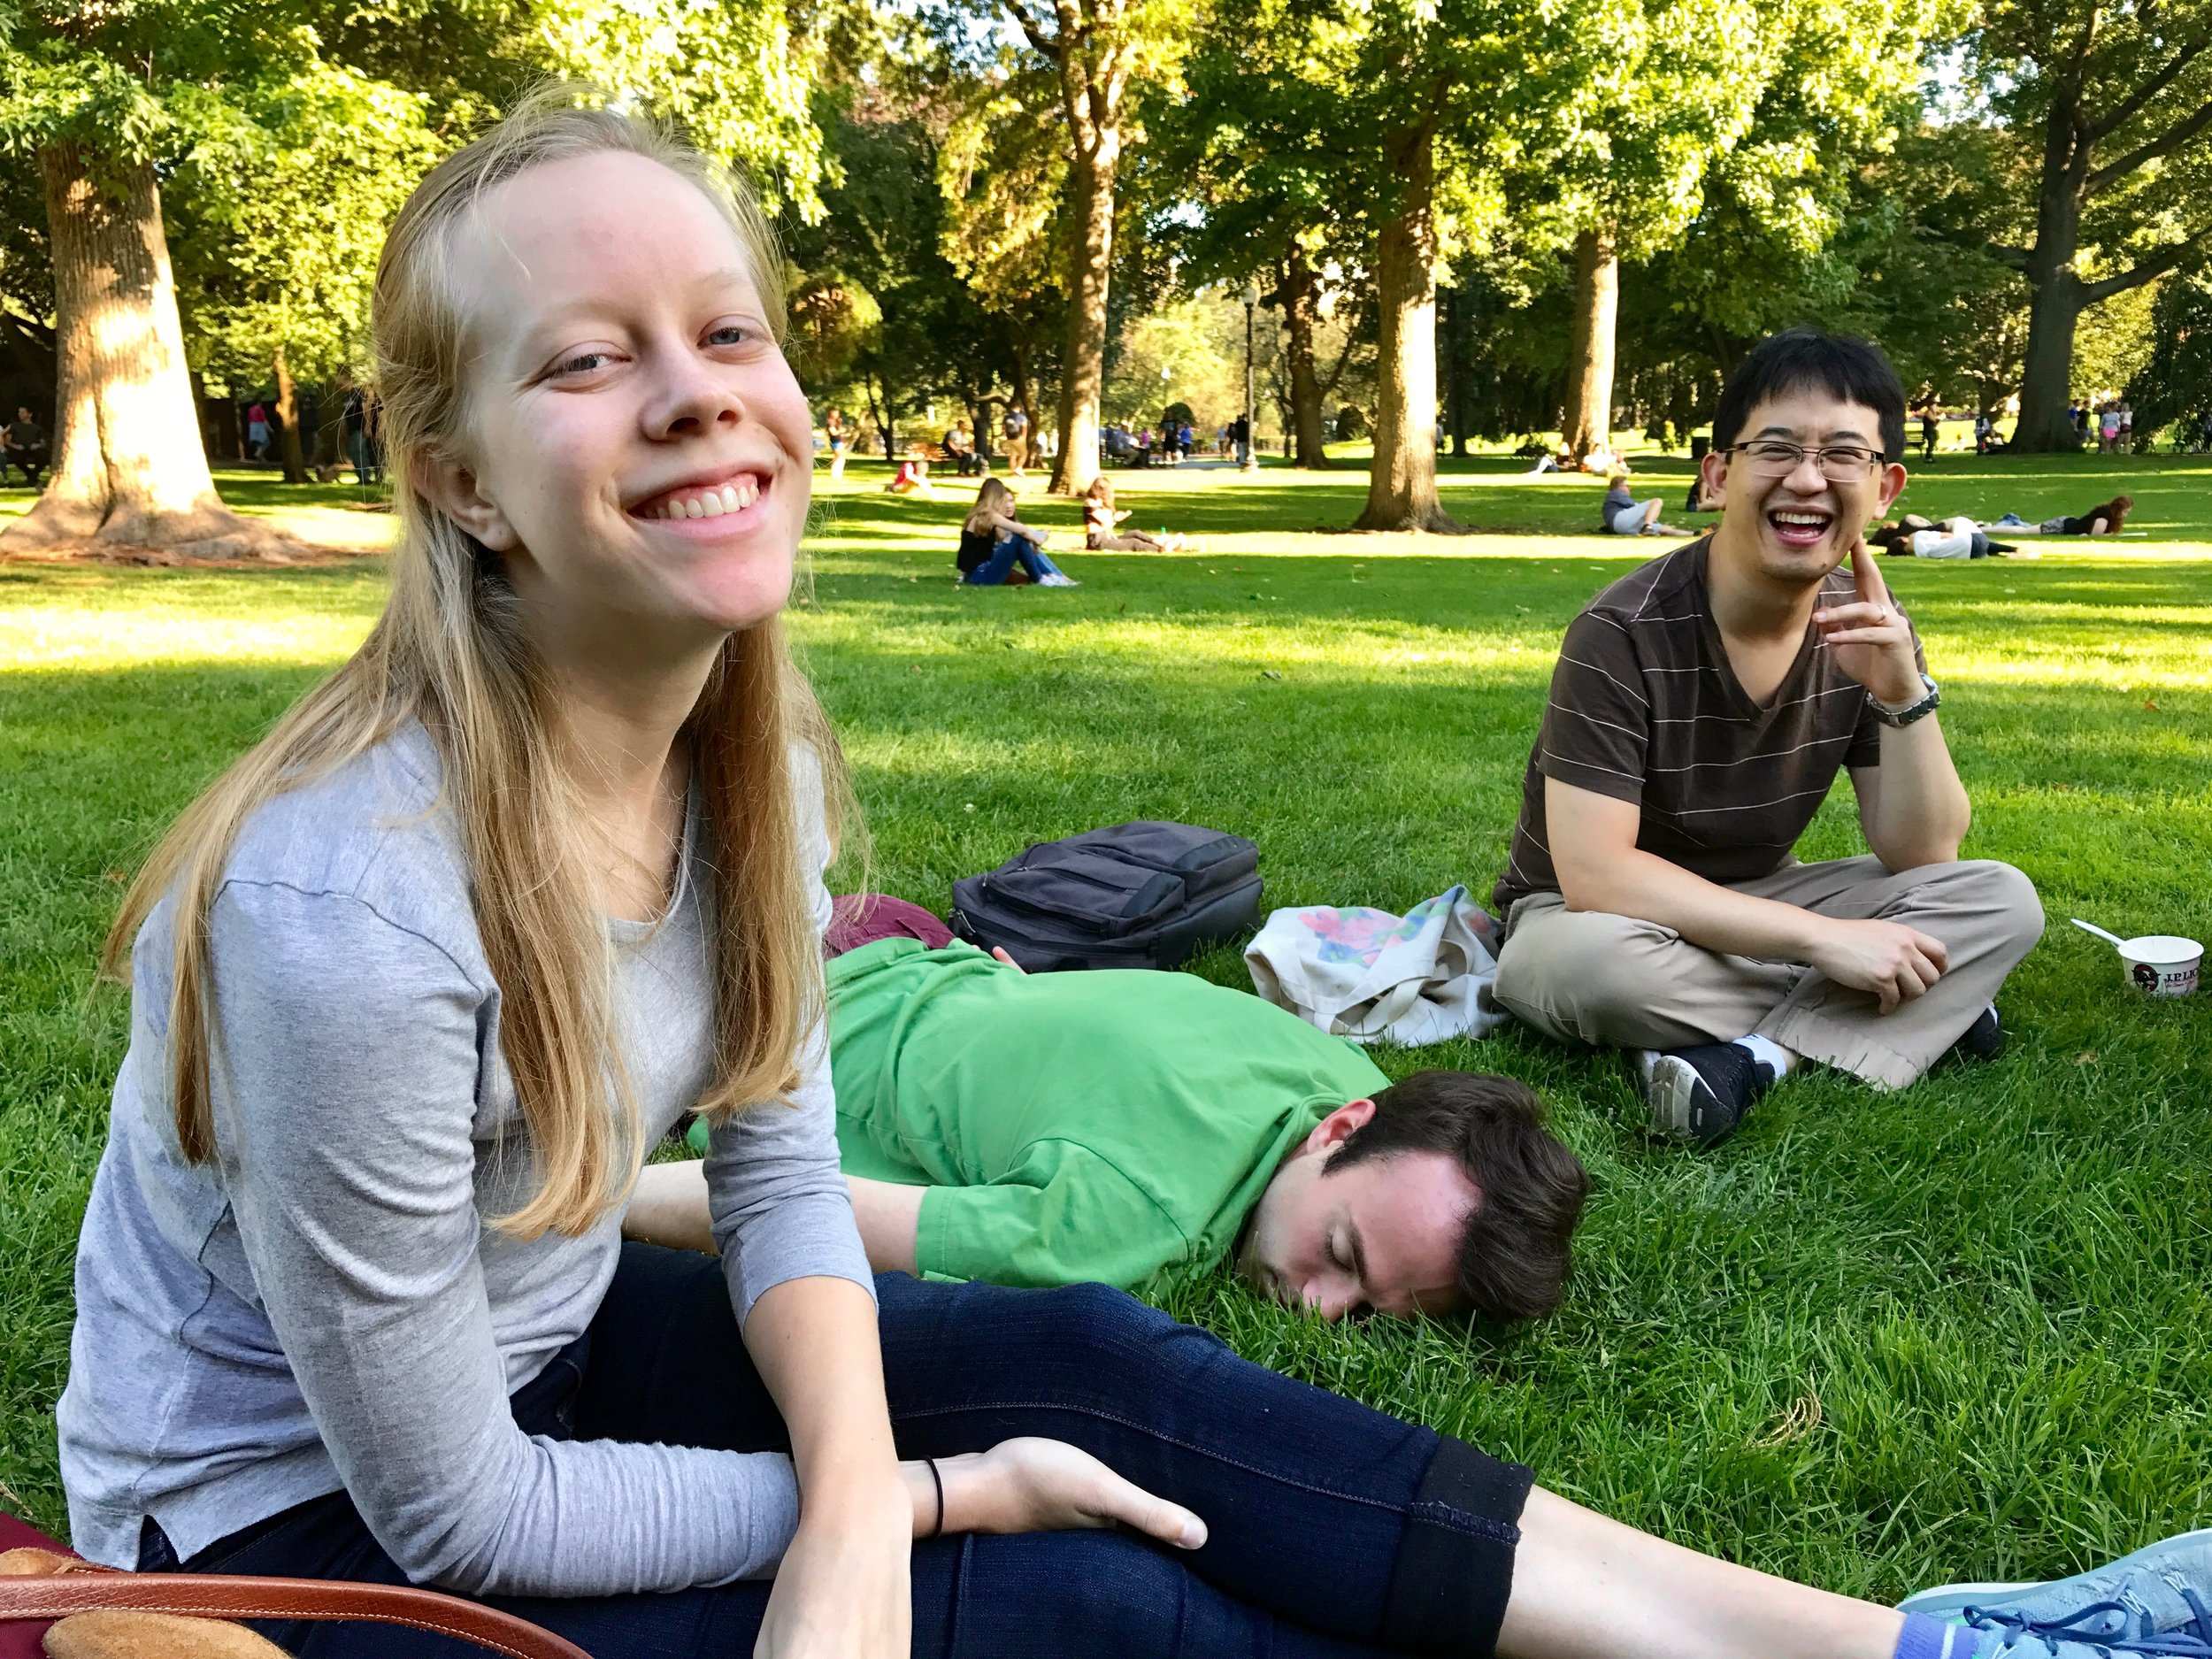 Laura Gullett and Emerson Fang enjoy the sun in Boston Public Garden.